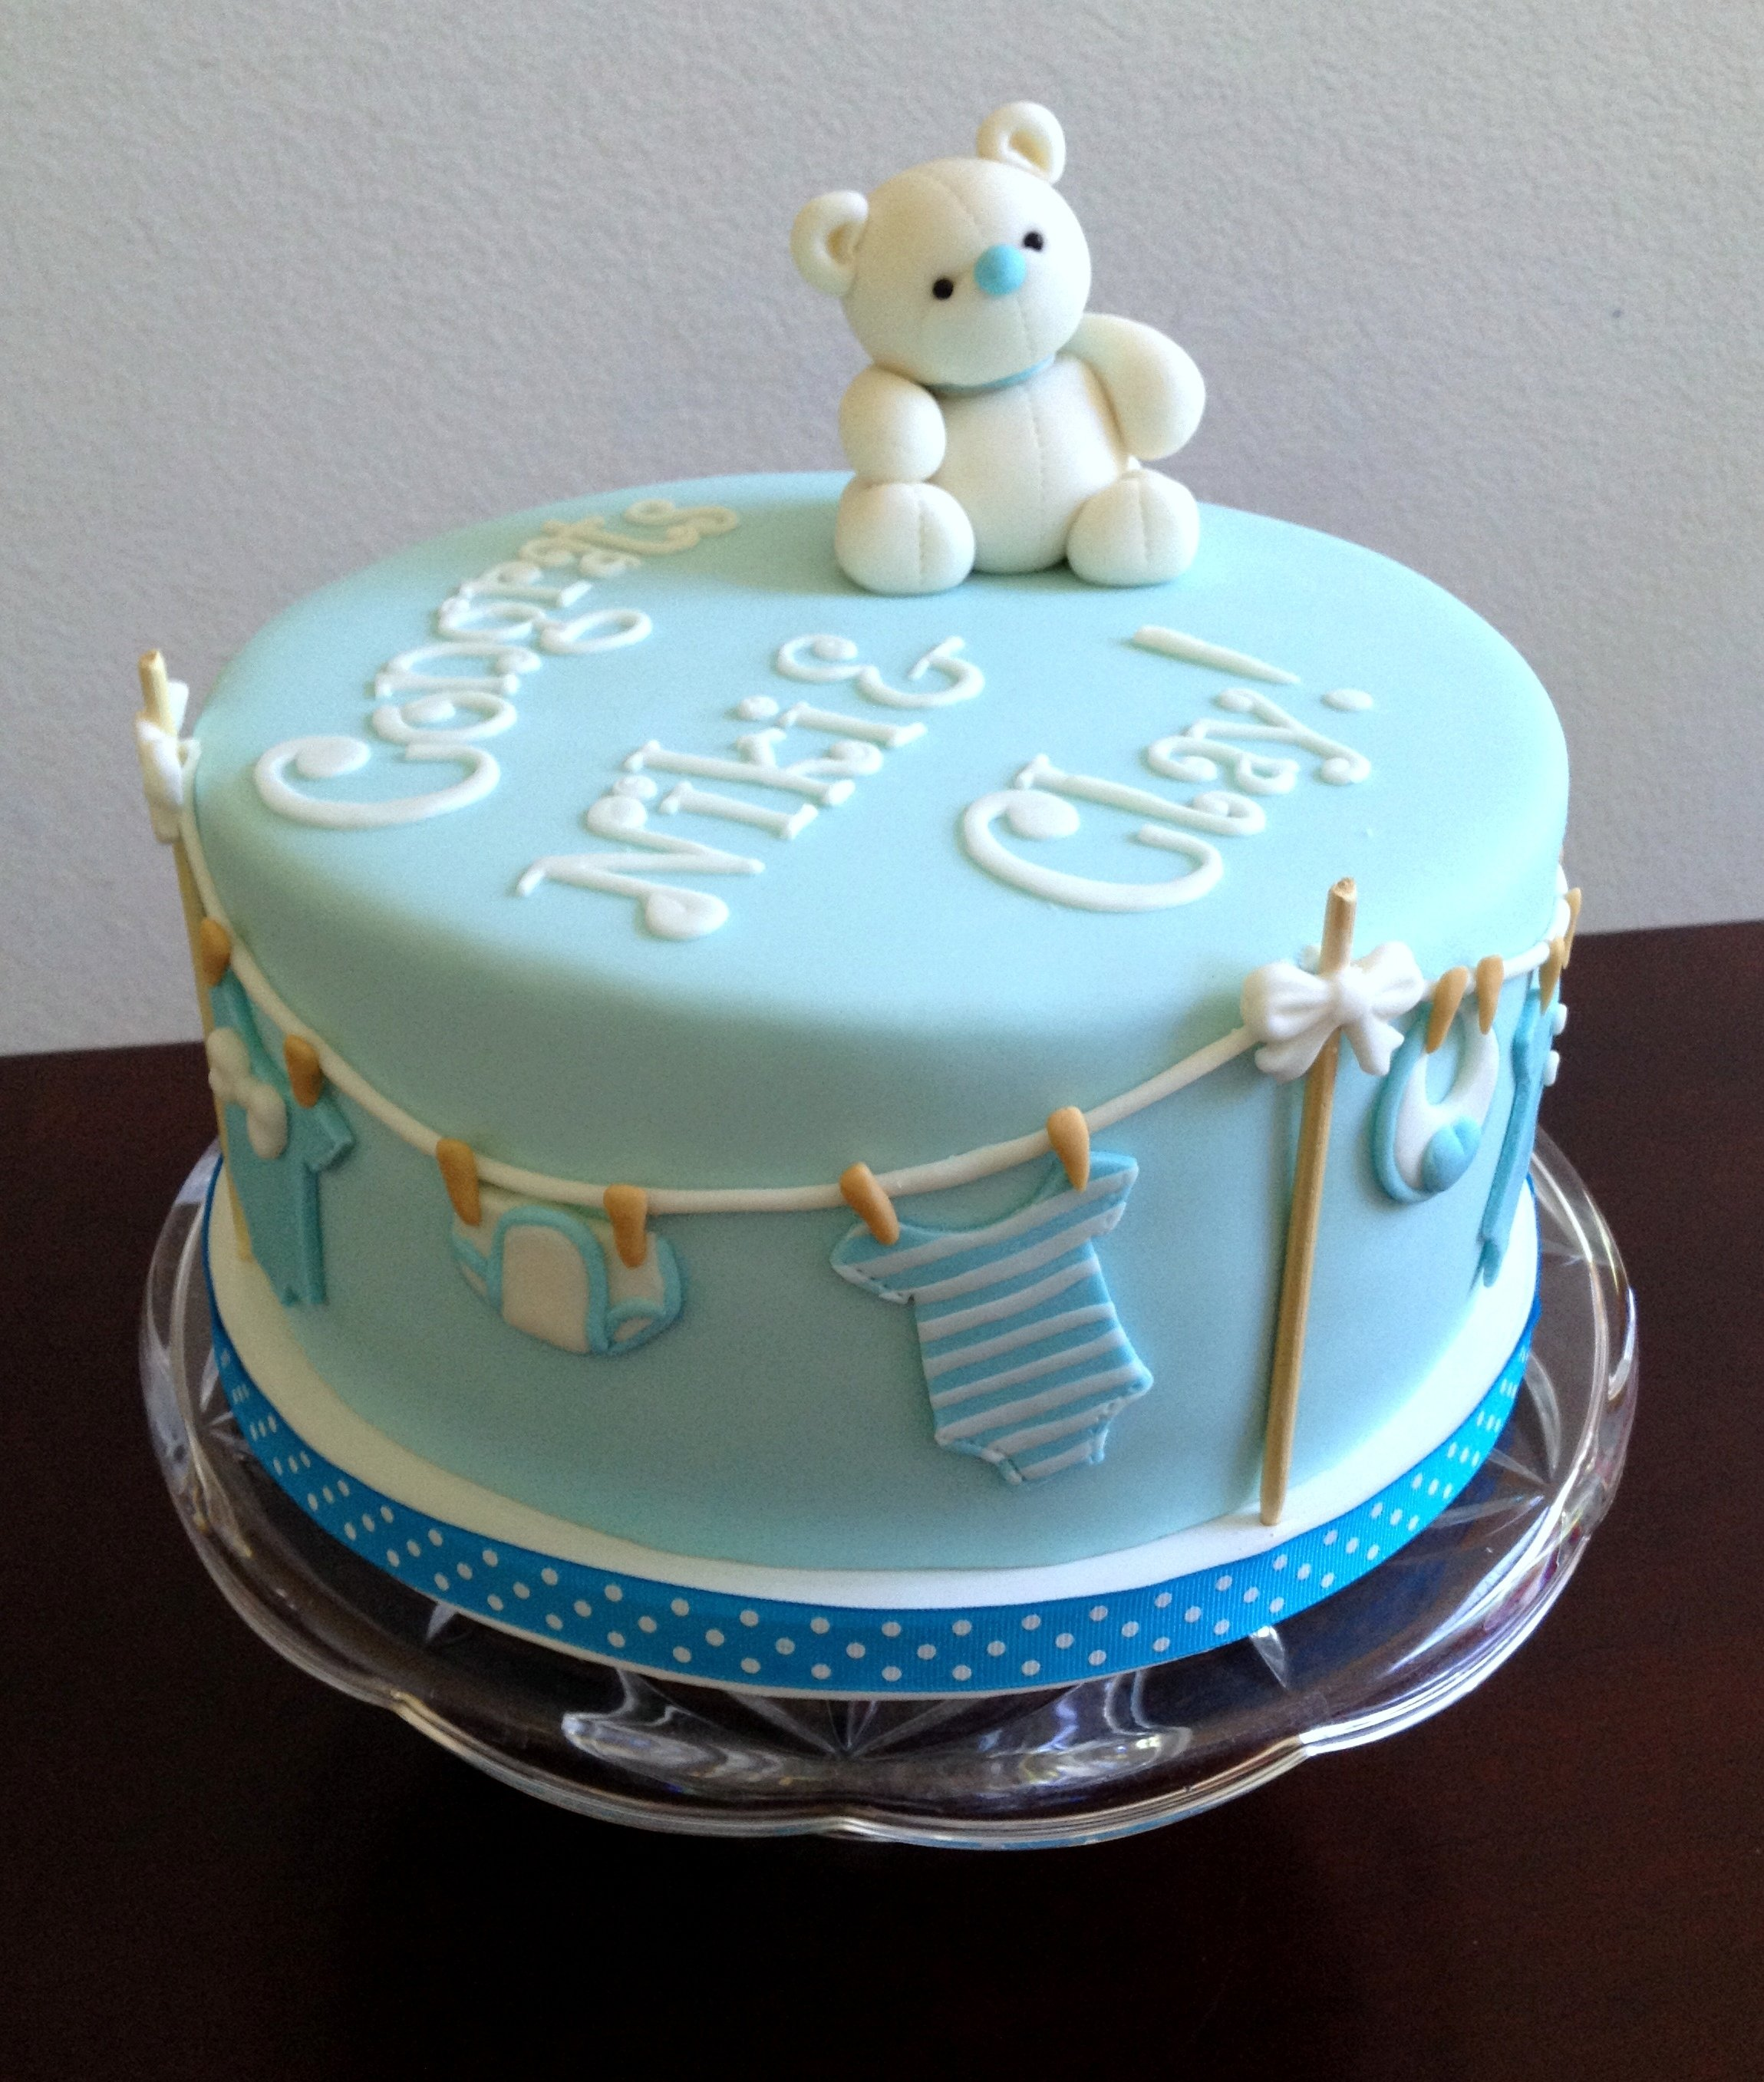 10 Awesome First Birthday Ideas Martha Stewart baby shower ideas cakes cake boy forres collection wiith white blue 2021